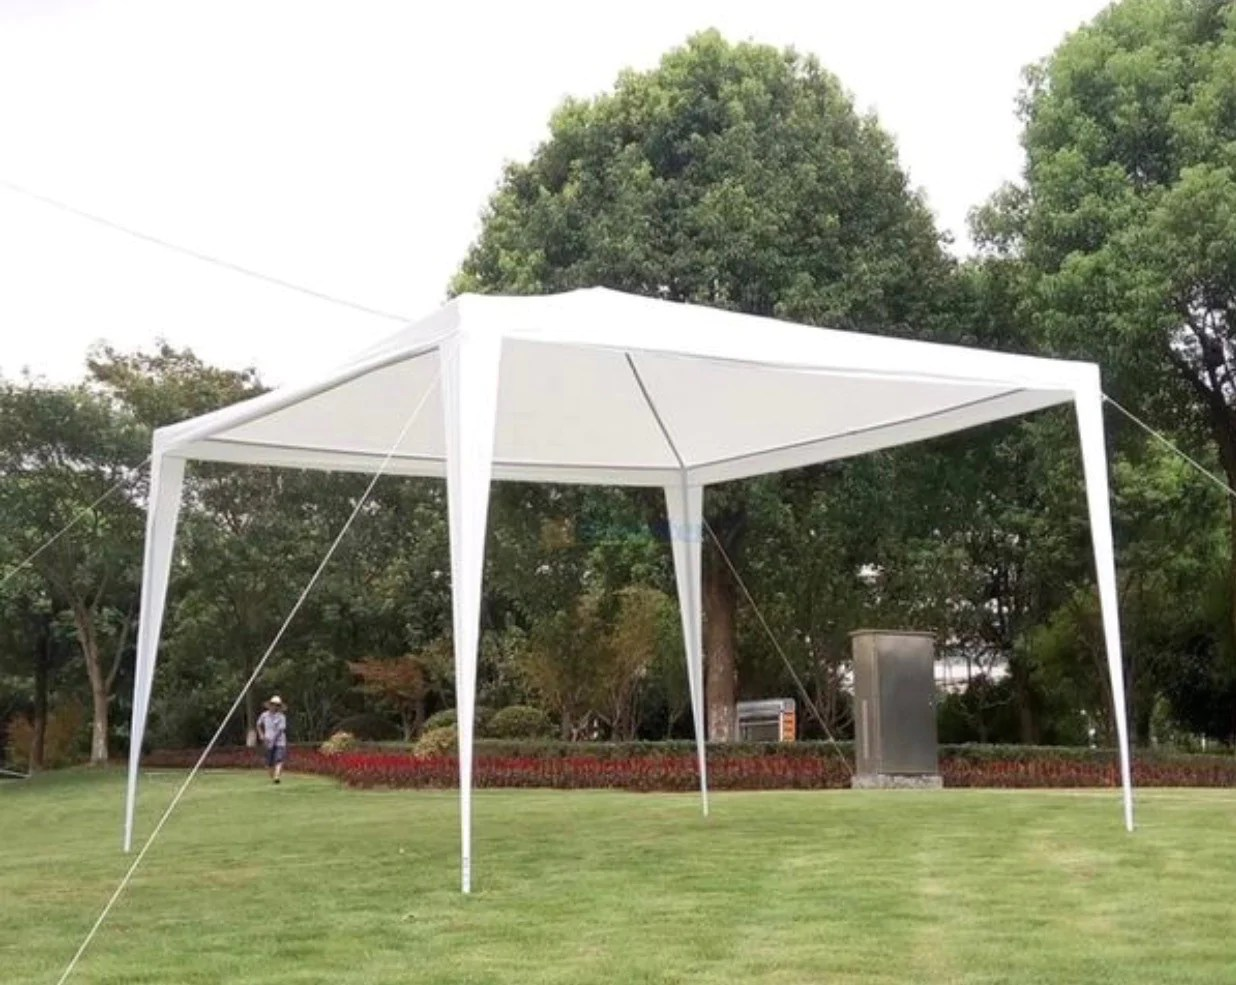 10x10 Canopy Party Tent Fast Free Shipping Bill Banks